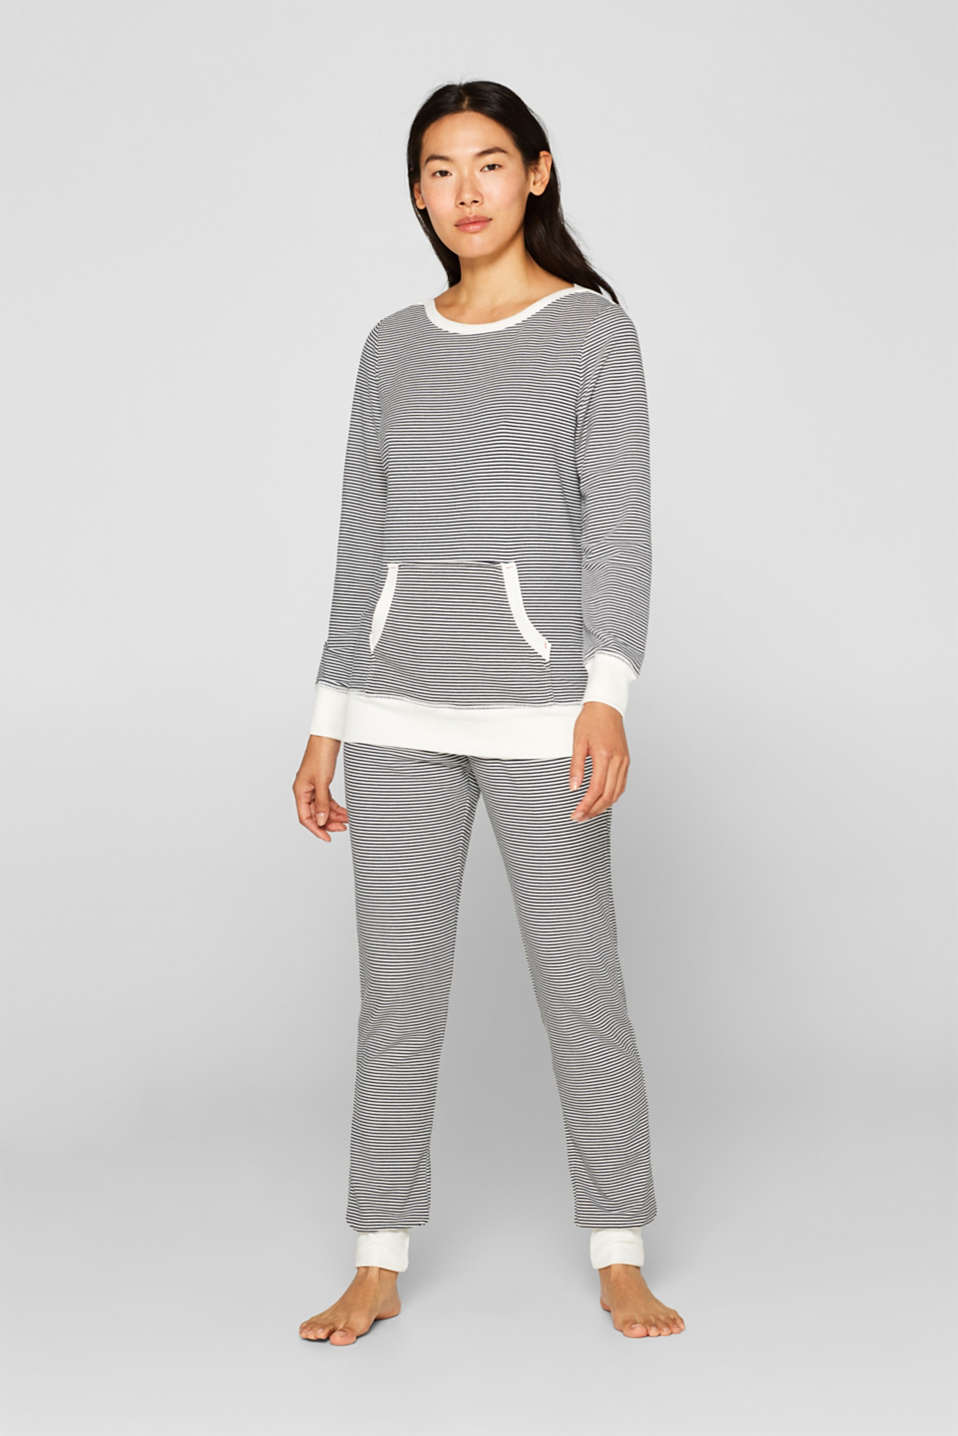 Stretch long sleeve top with a kangaroo pocket